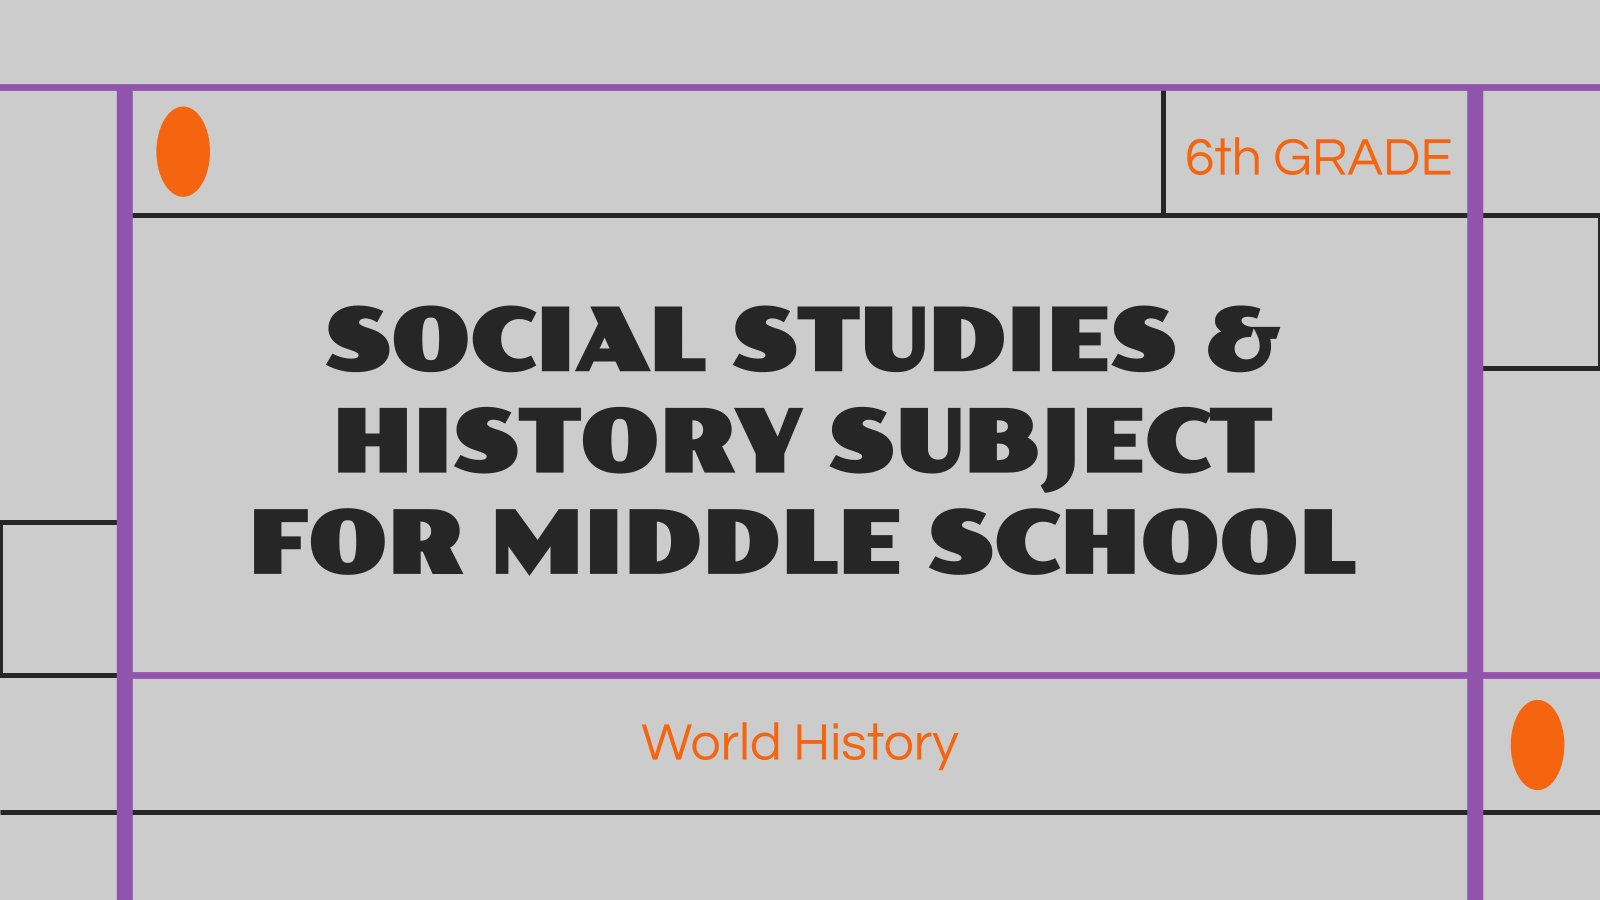 Social Studies & History Subject for Middle School - 6th Grade: World History presentation template